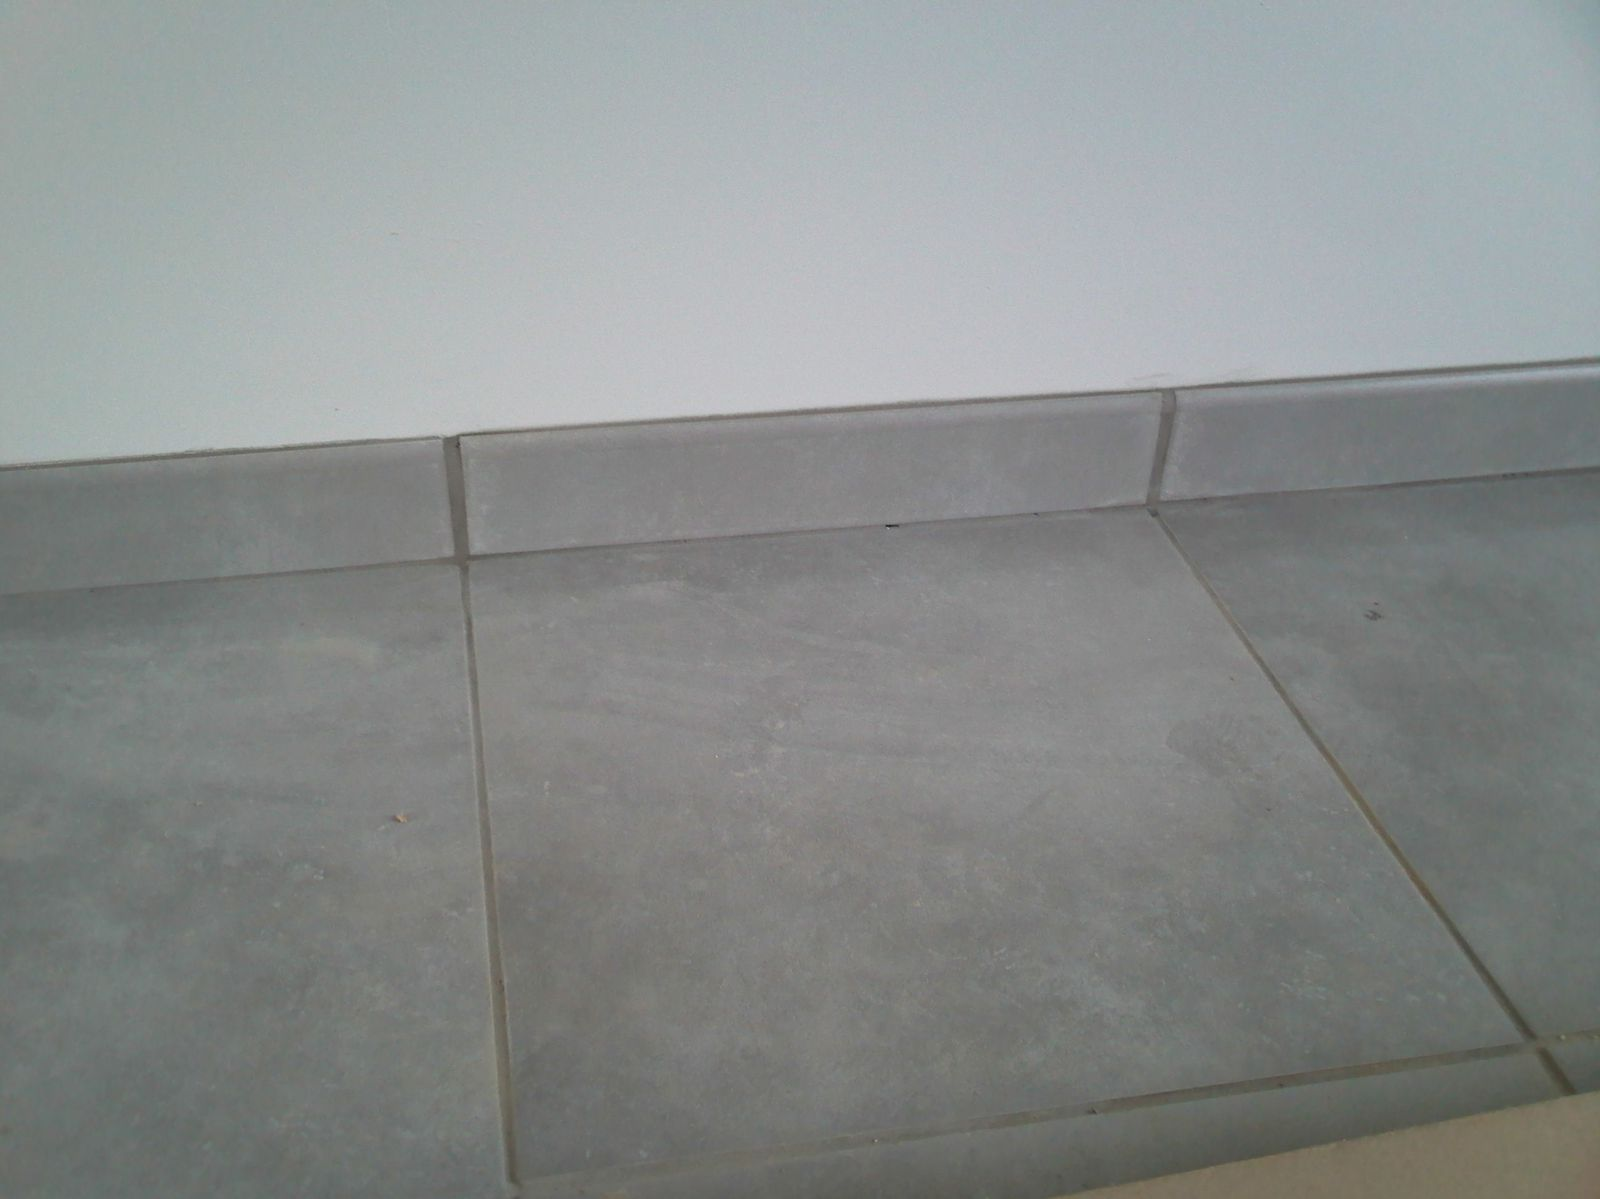 Formidable joint entre plinthe et carrelage 15 plinthe - Blanchir les joints de carrelage ...